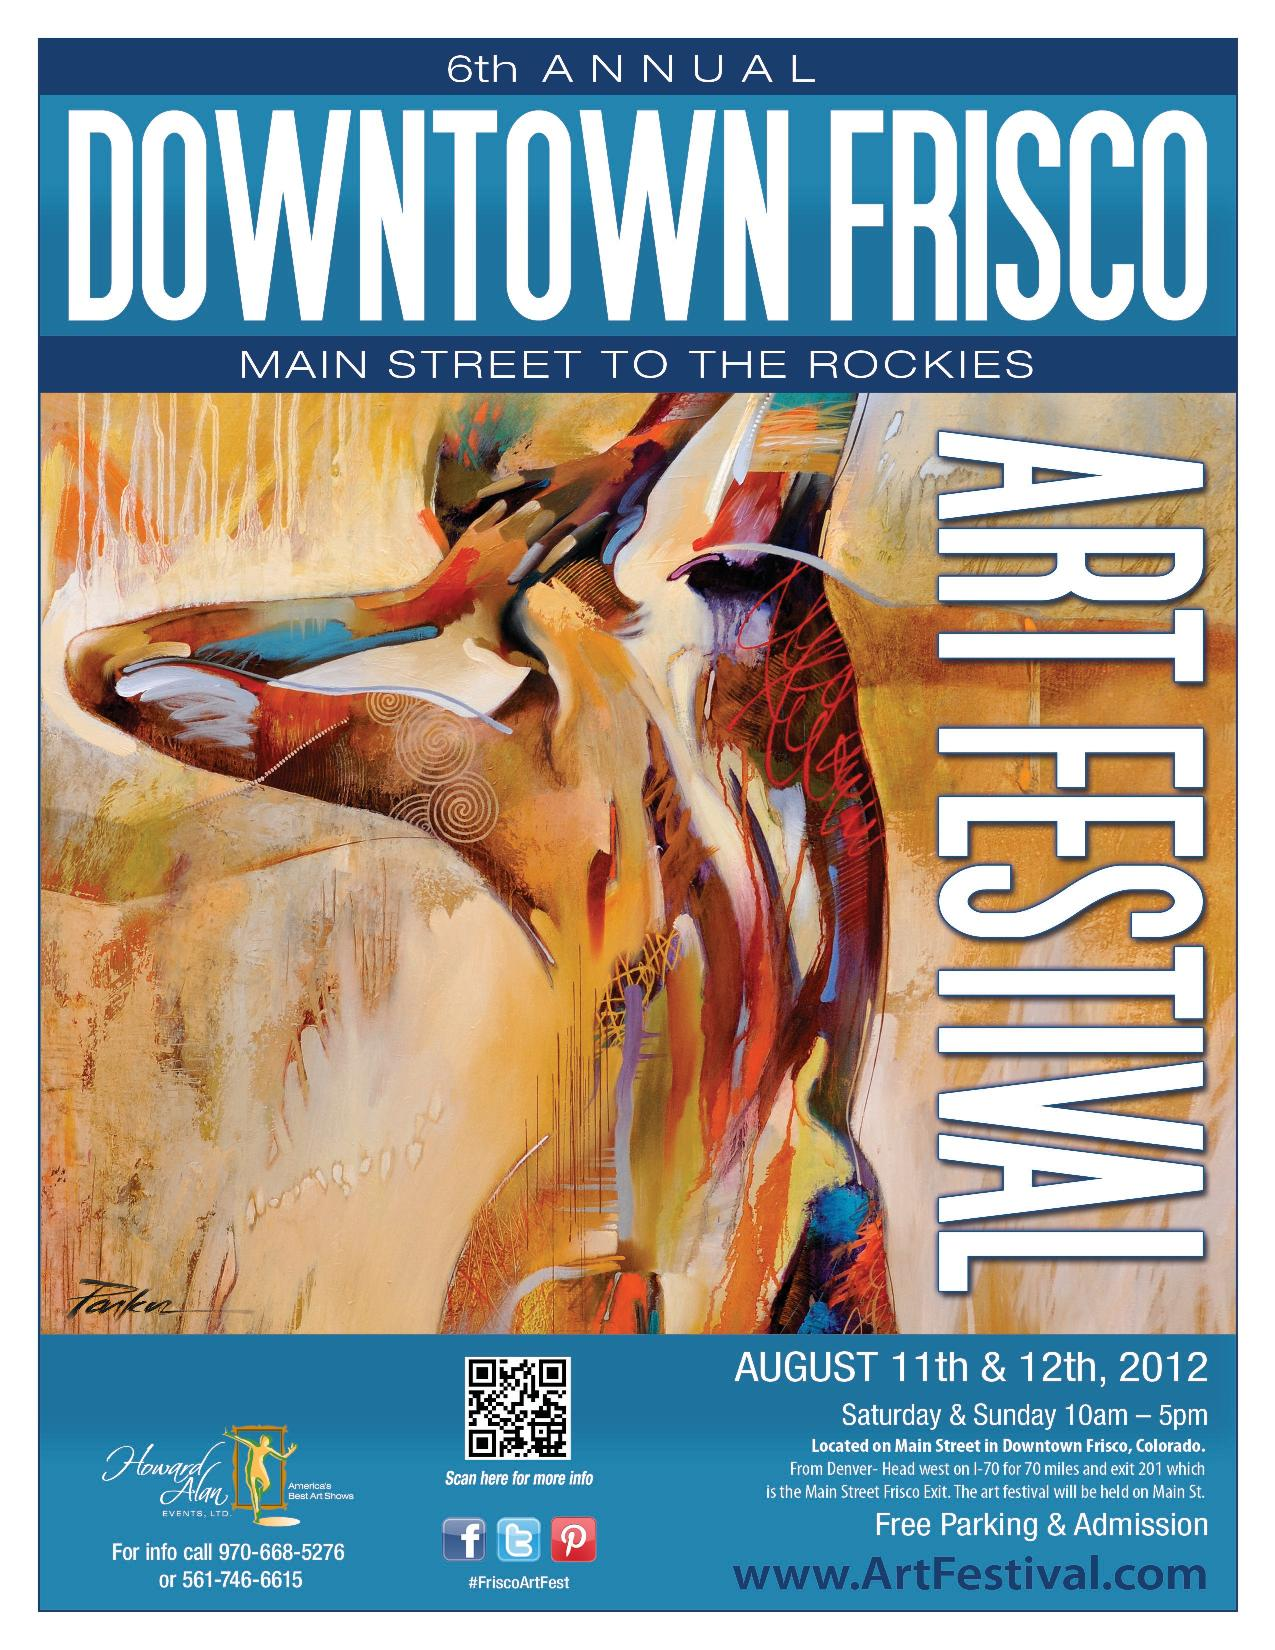 howard alan events proudly presents the 6th annual downtown frisco